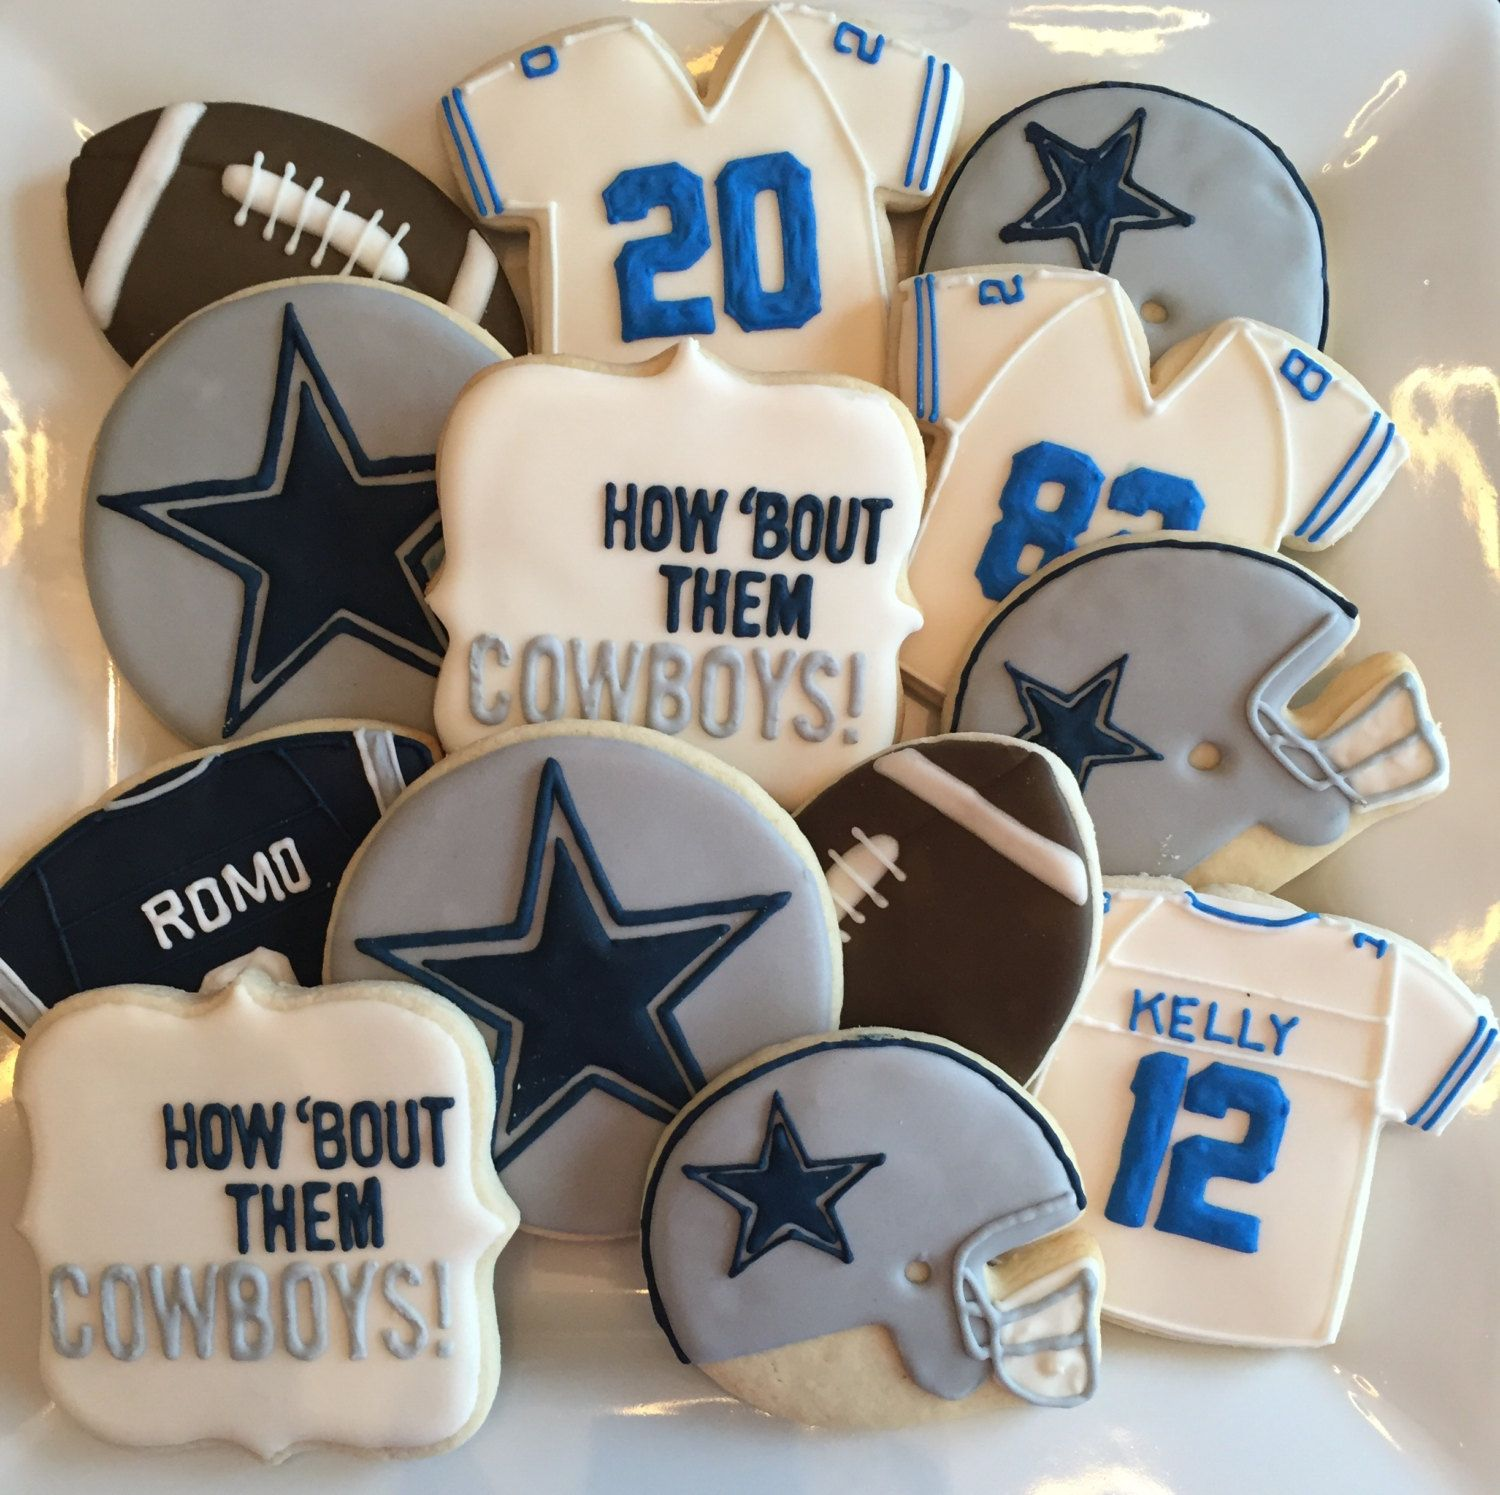 Nfl Dallas Cowboys Hand Decorated Football Sugar Cookies